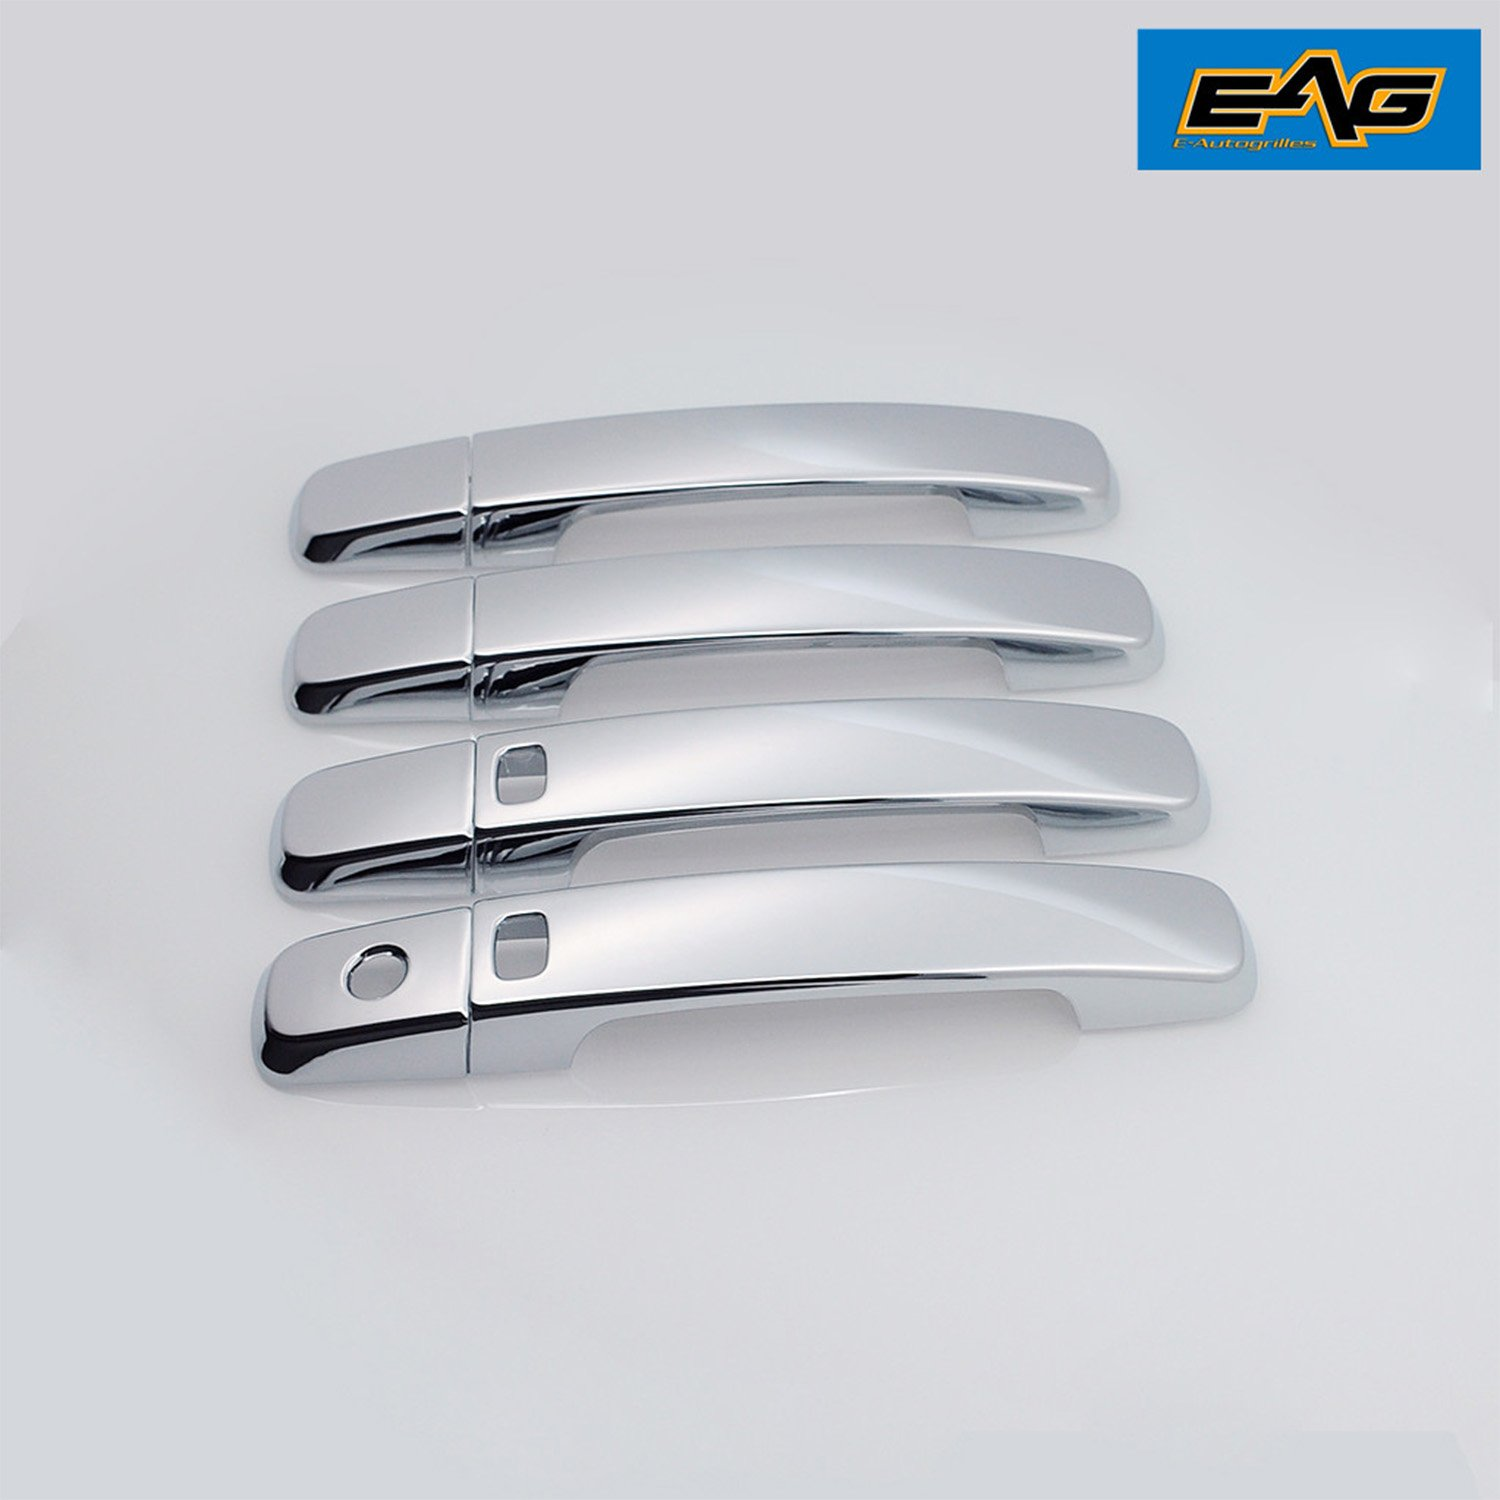 EAG 07-13 Nissan Altima/04-09 Nissan Quest/07-12 Nissan Sentra/04-08 Nissan Maxima 4 Door Handle Cover Triple Chrome Plated ABS with Smart Keyhole (64-0406)